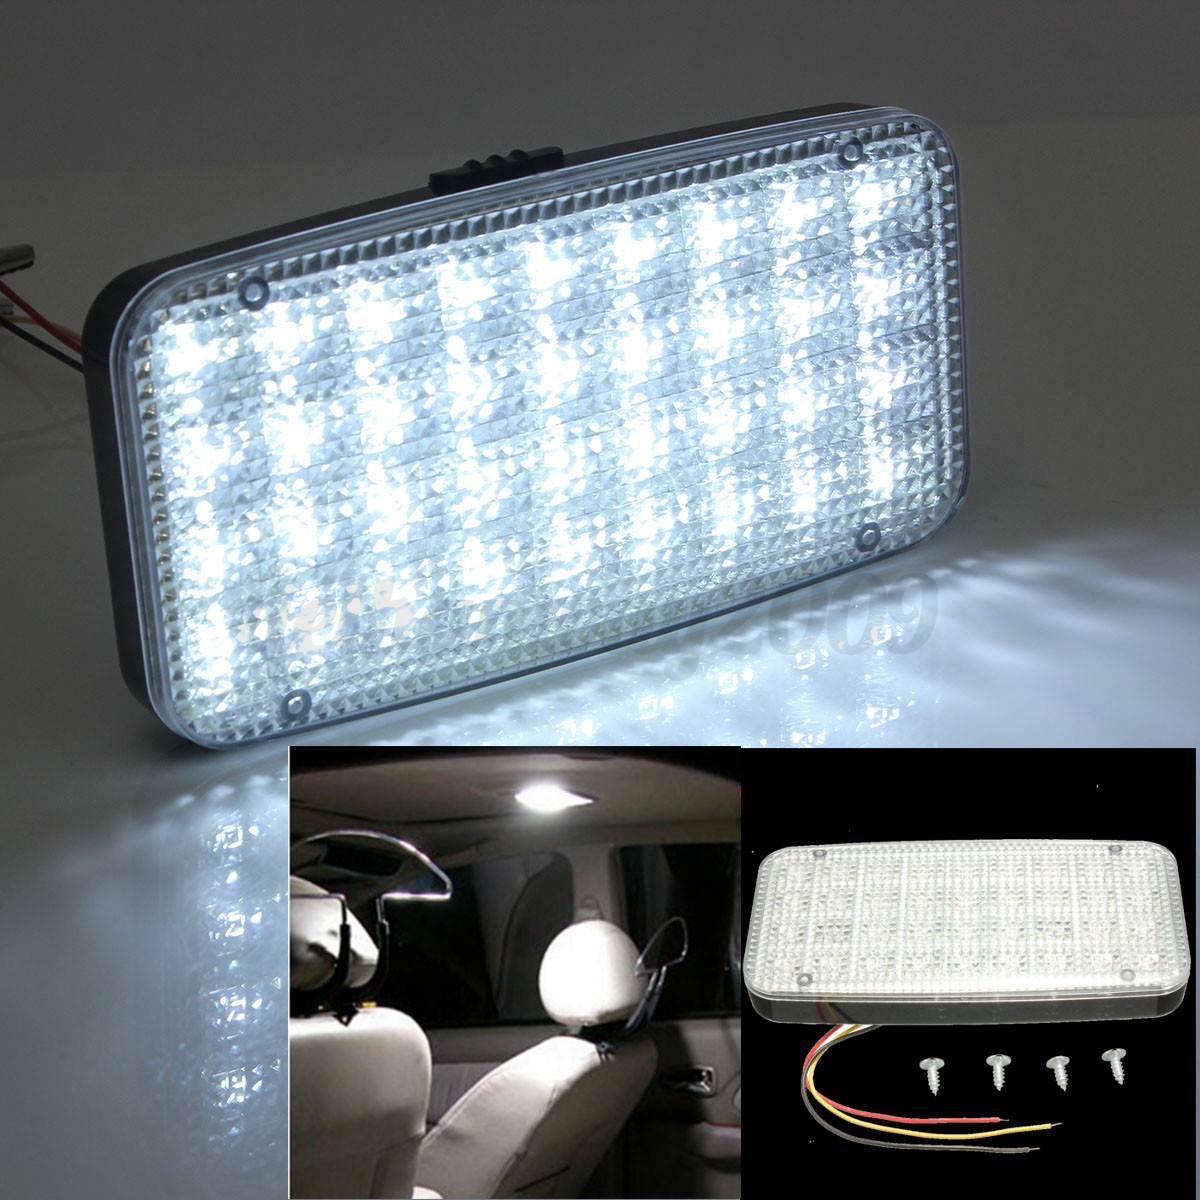 12v 36 white led ceiling dome roof interior light lamp for car auto van vehicle ebay. Black Bedroom Furniture Sets. Home Design Ideas